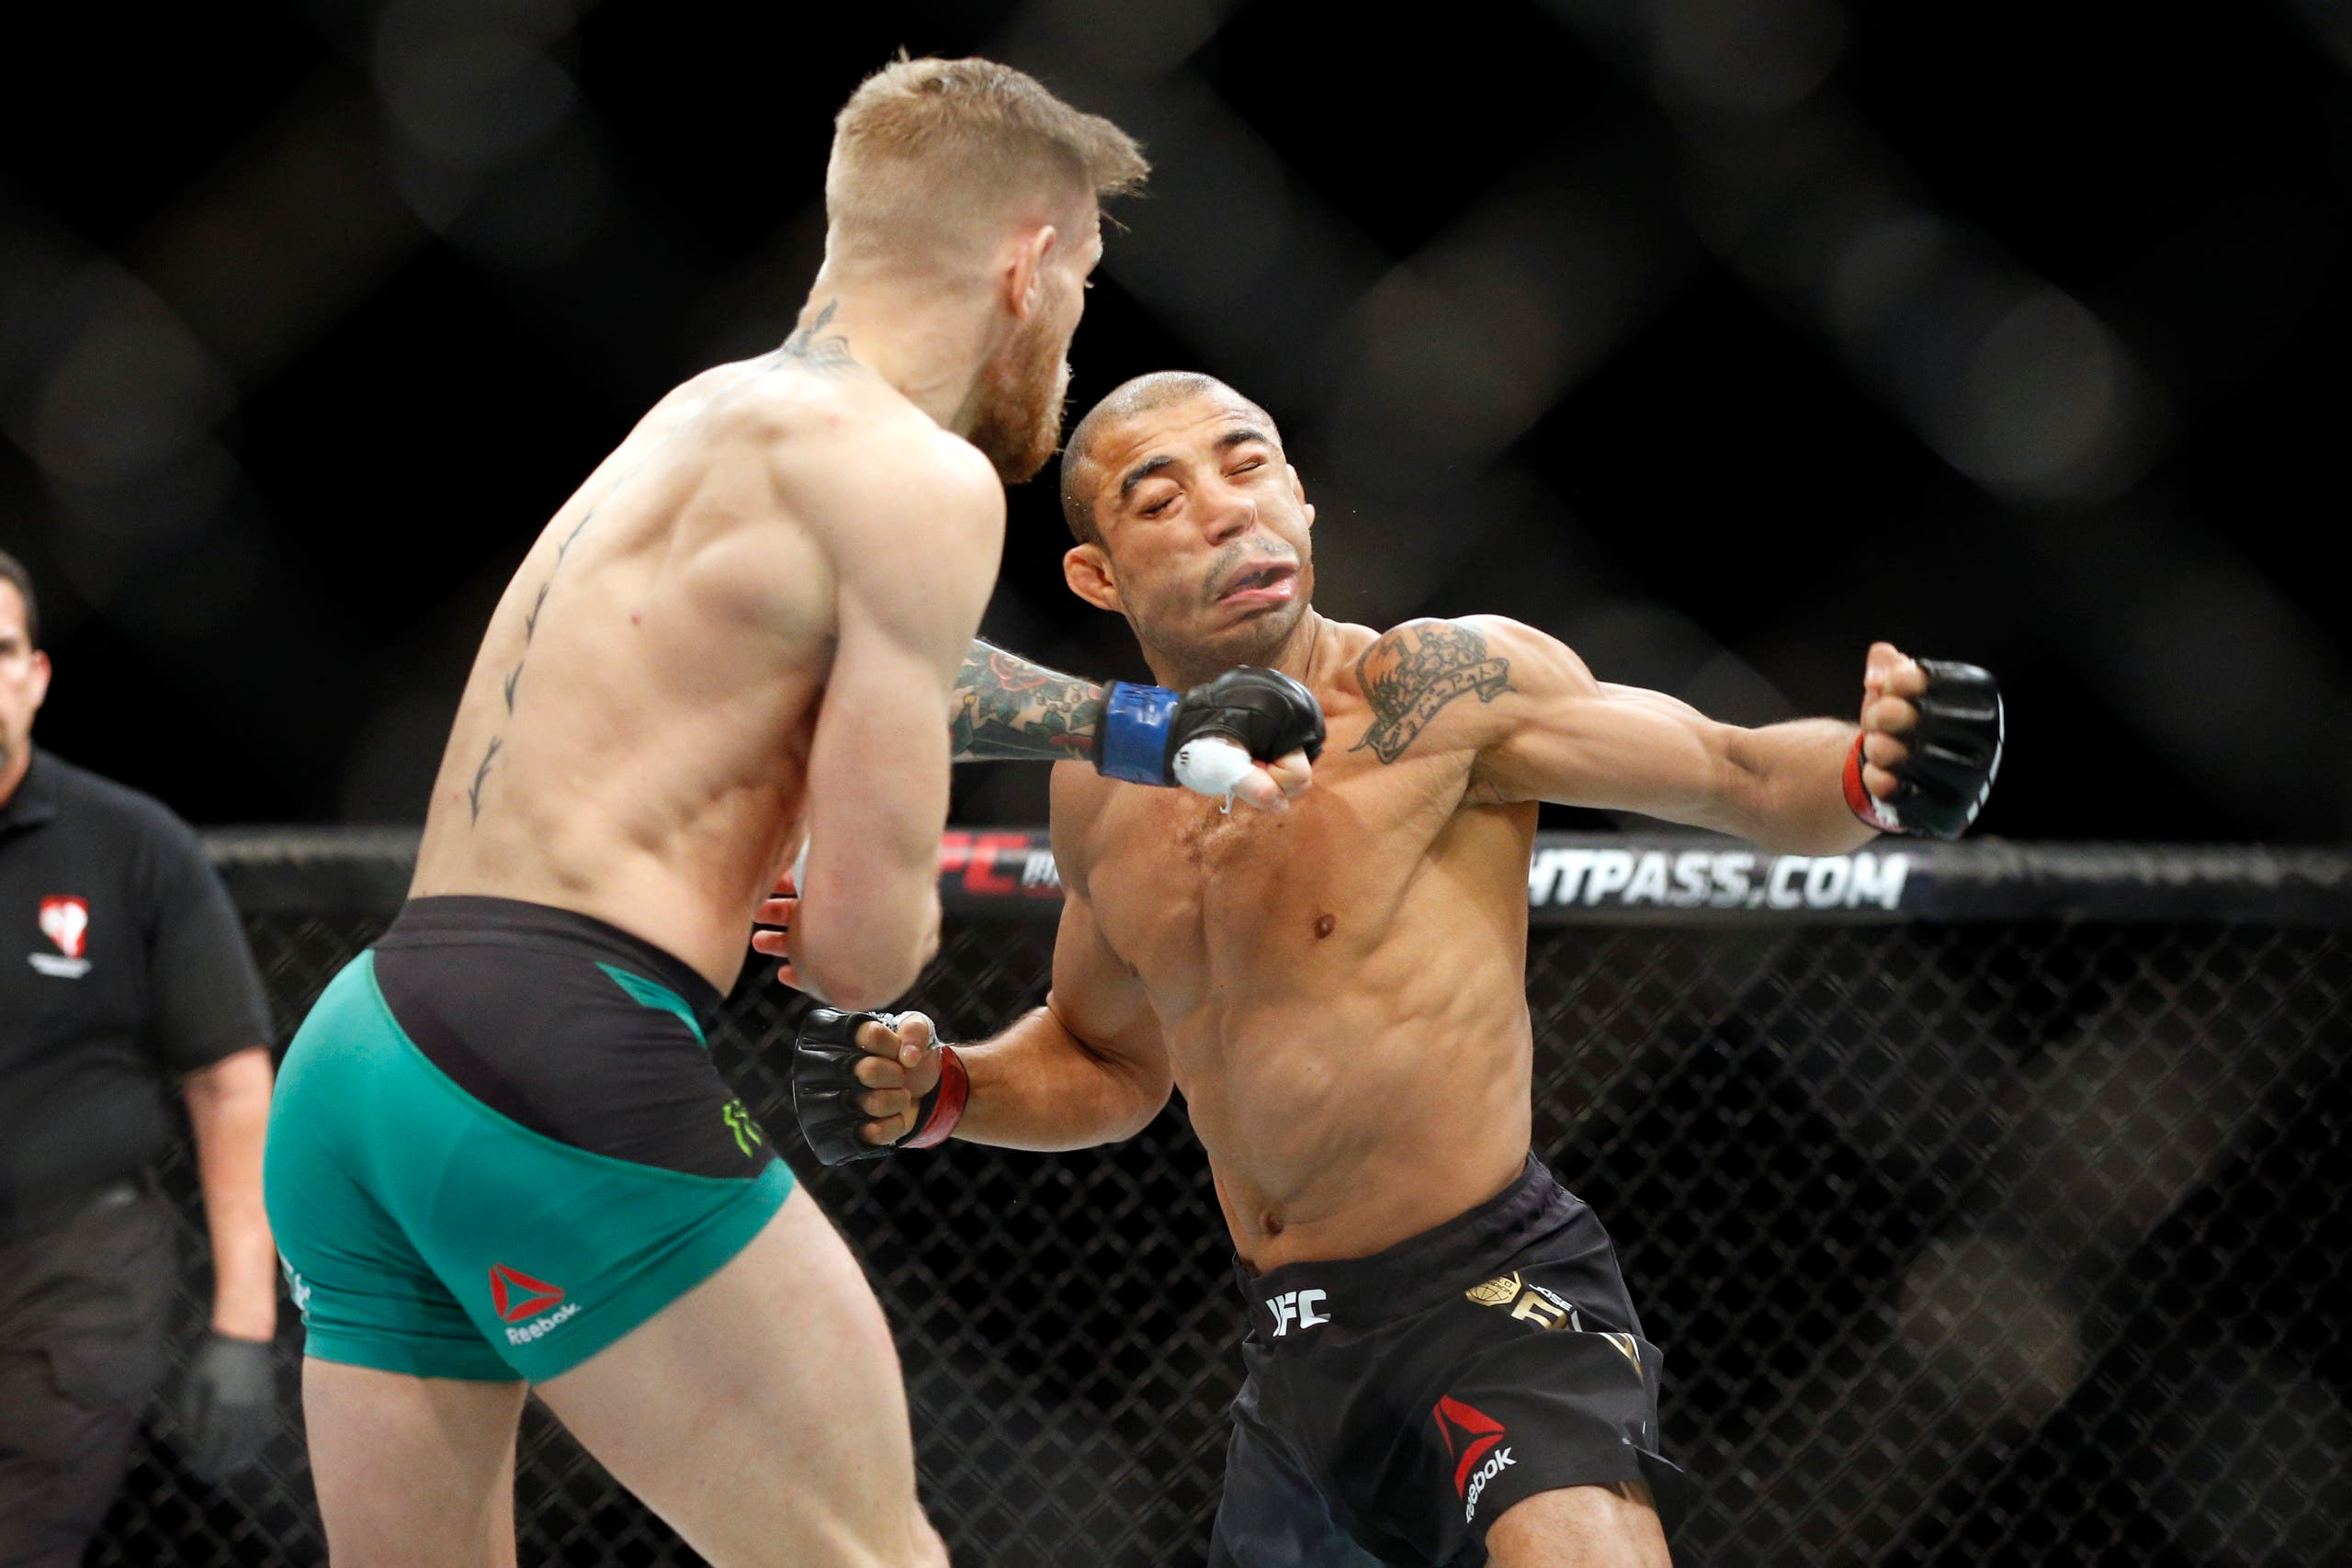 Conor McGregor knocks out Jose Aldo during a featherweight championship mixed martial arts bout at UFC 194, Saturday, Dec. 12, 2015, in Las Vegas. (AP)